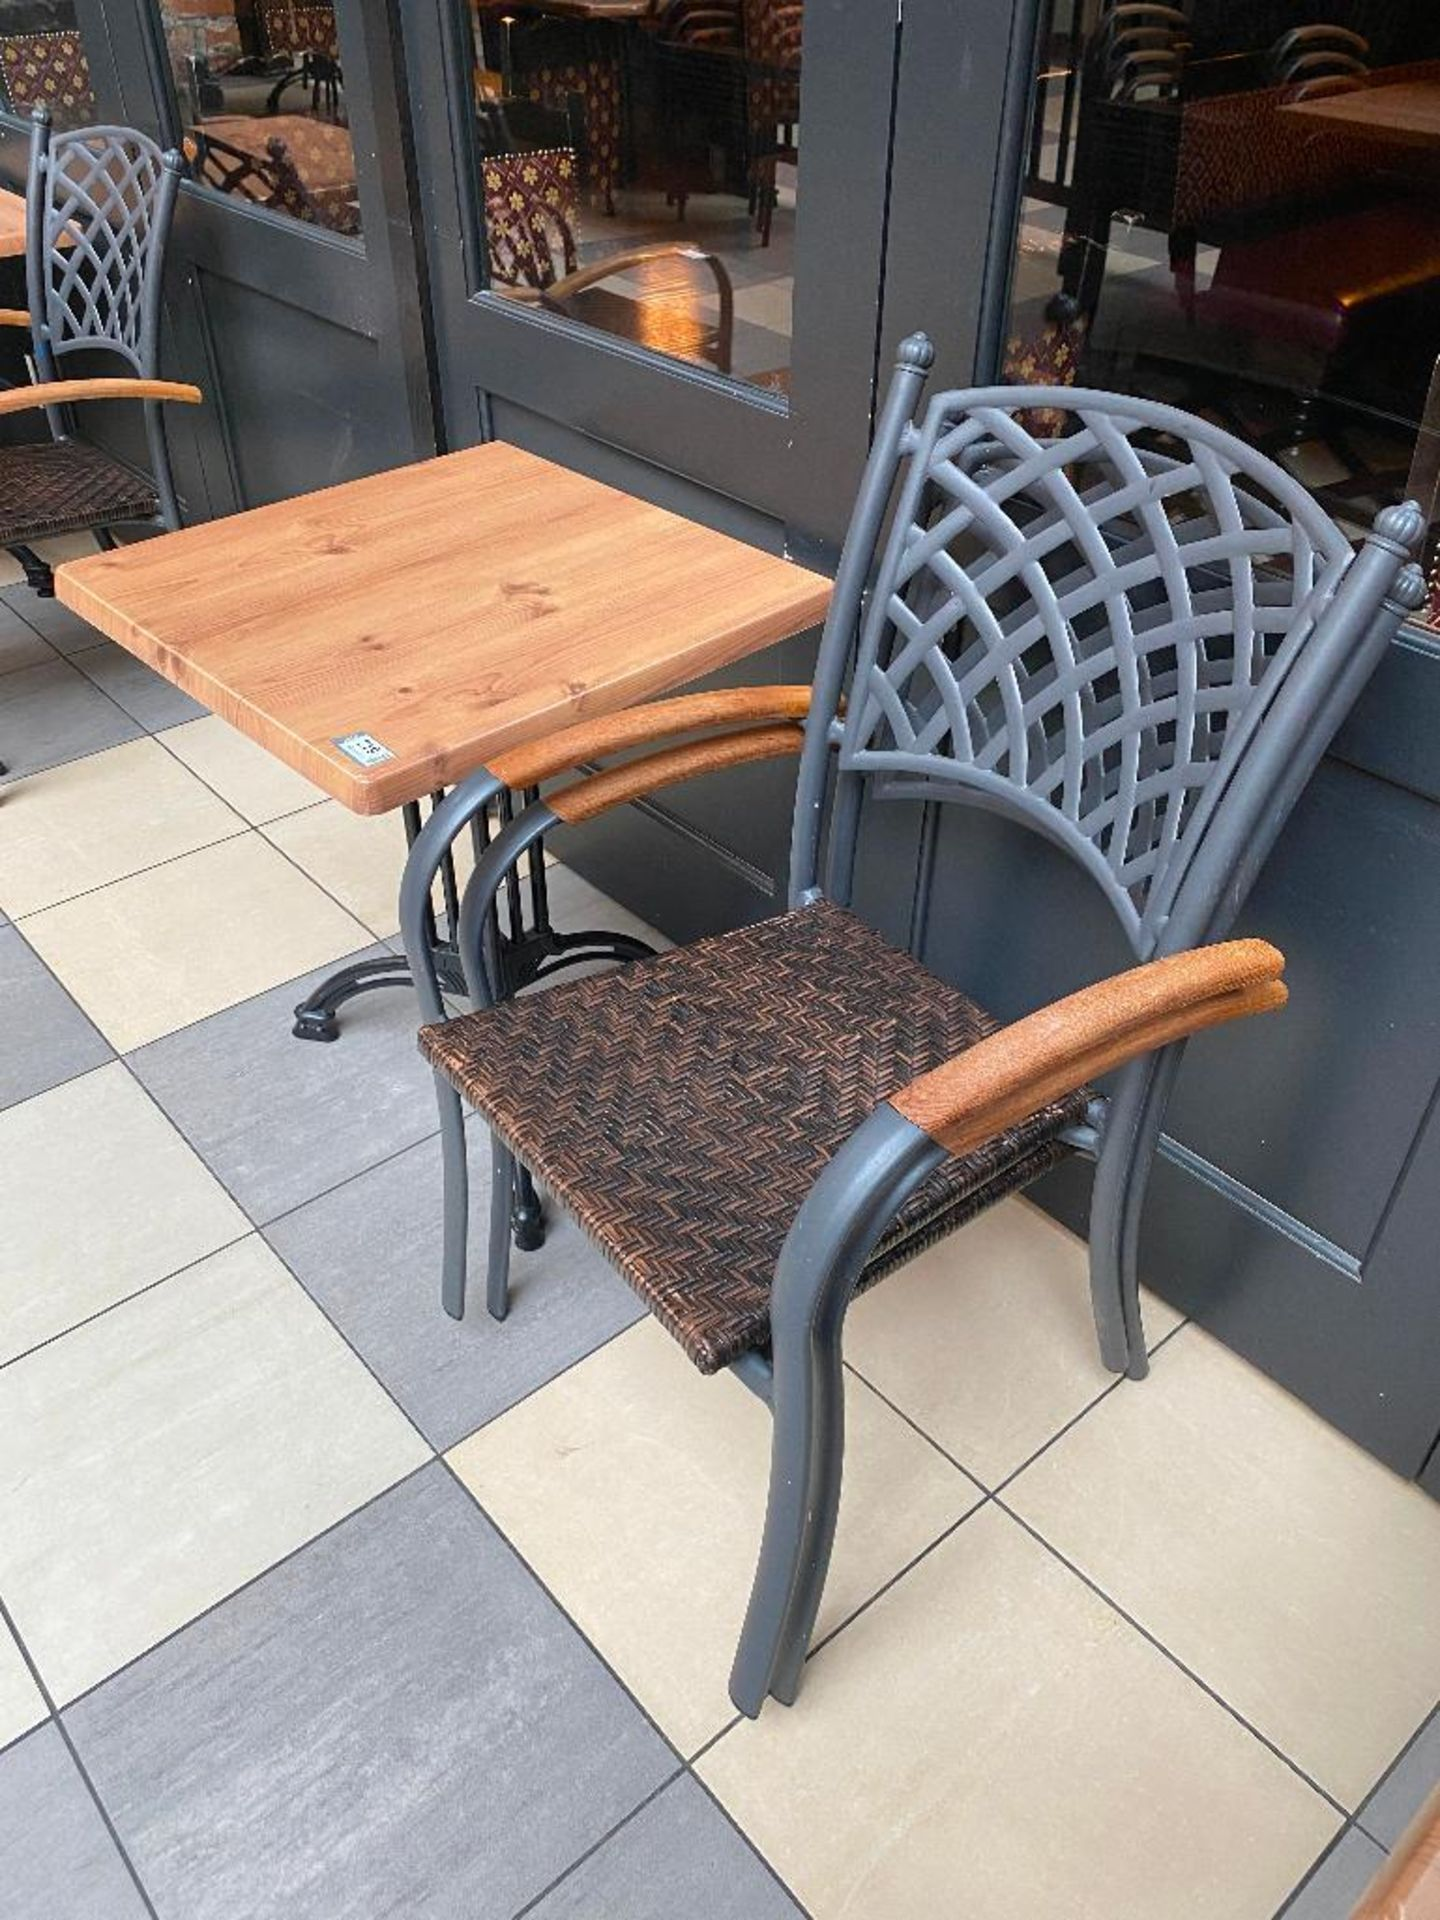 """TOPALIT 23"""" X 23"""" PATIO TABLE WITH 2 CHAIRS - Image 2 of 4"""